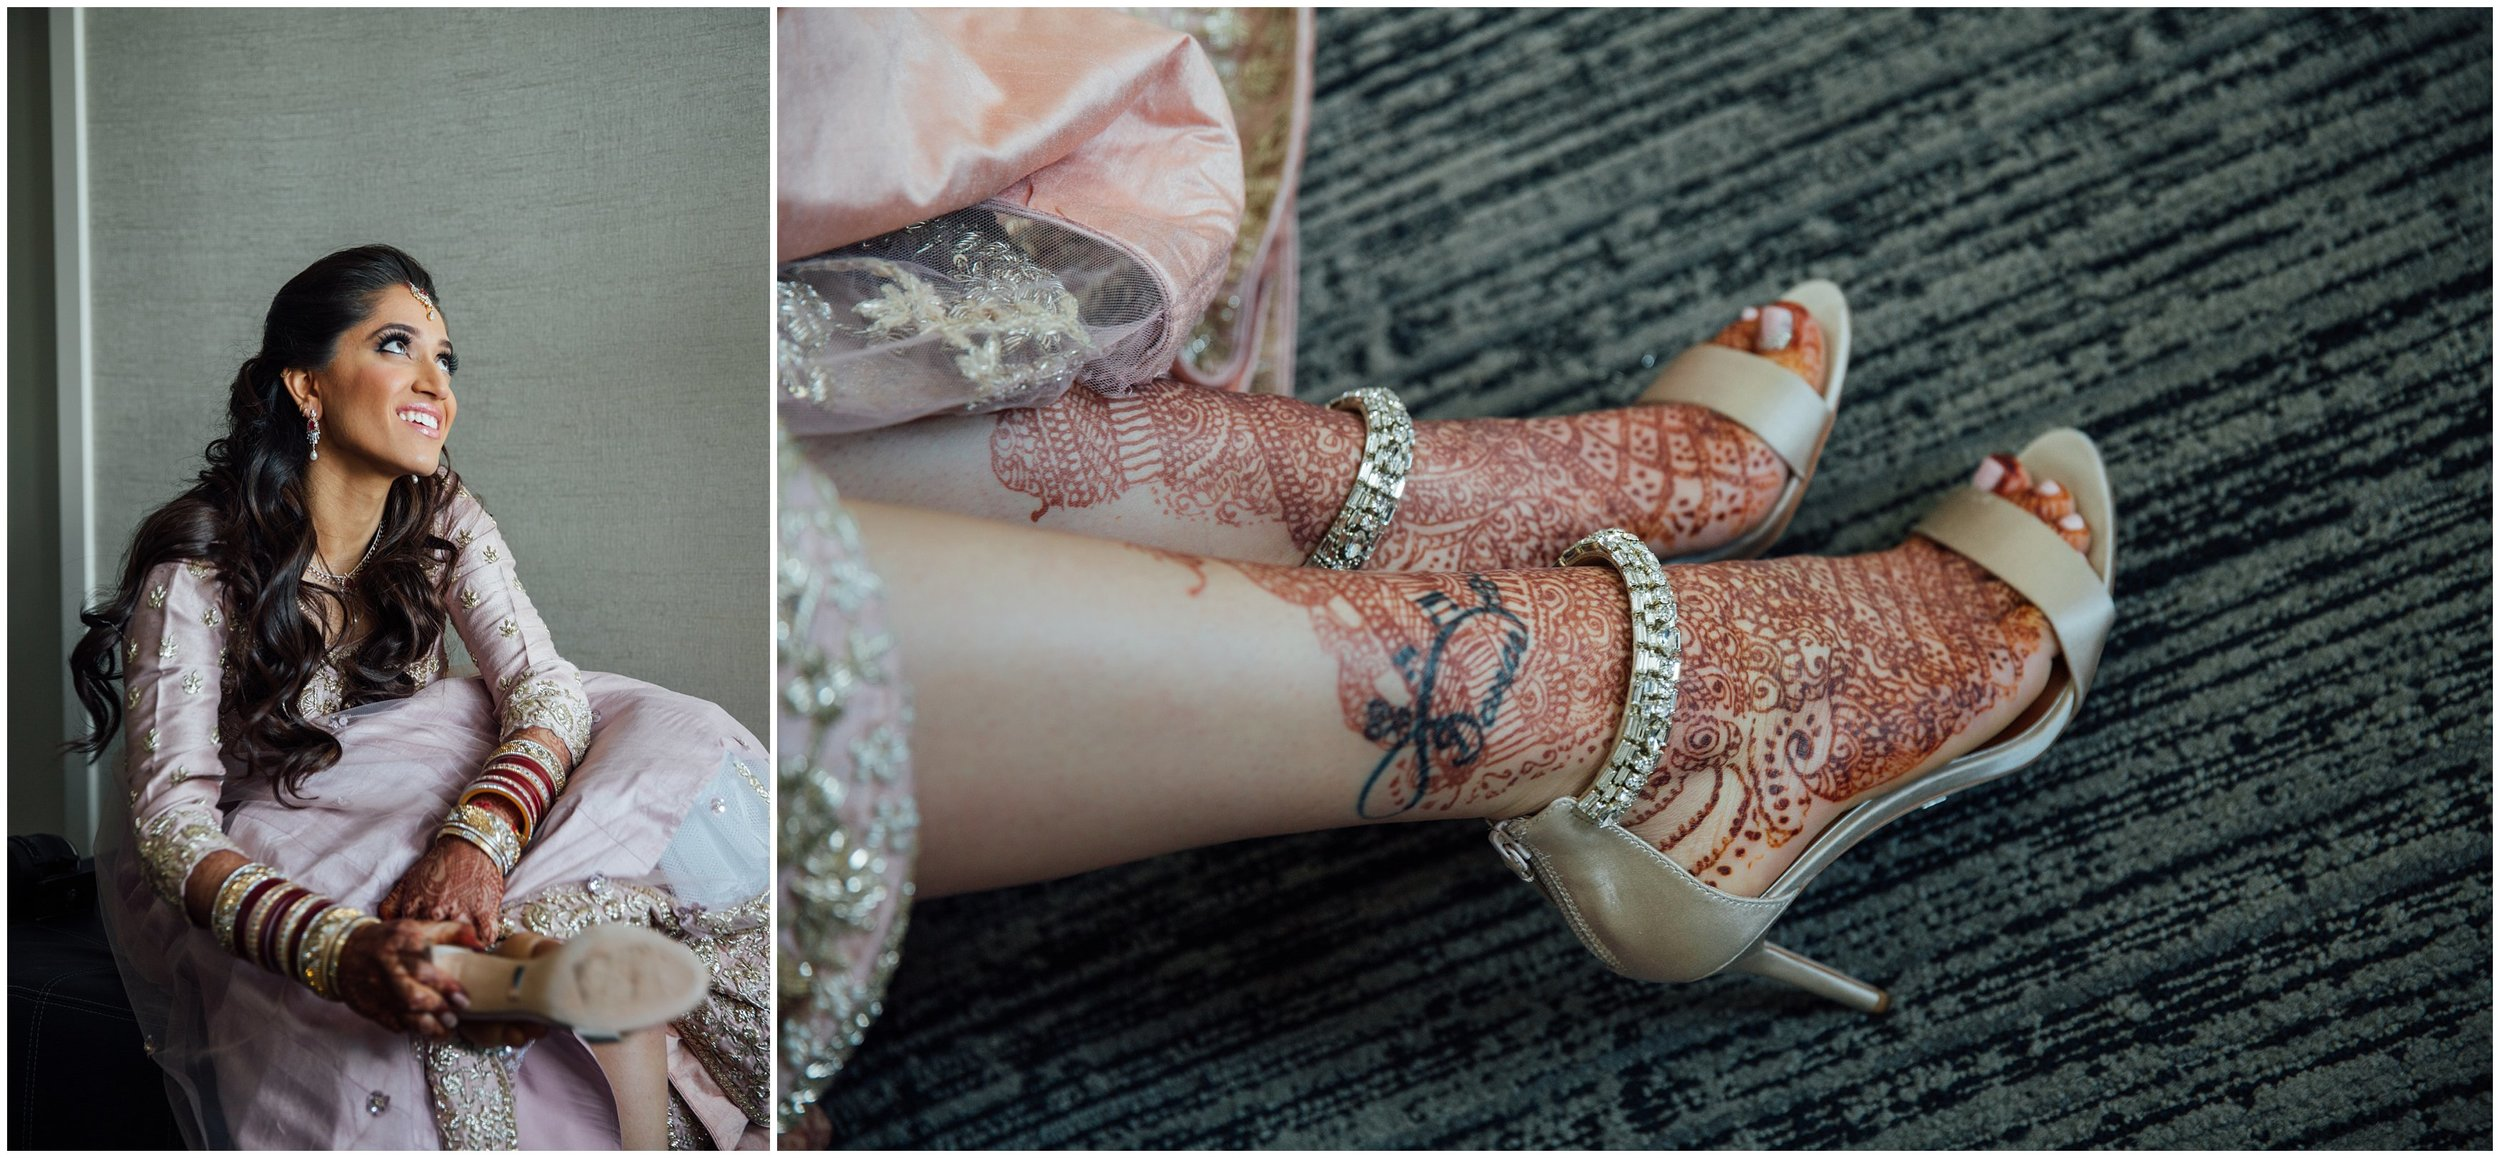 Le Cape Weddings - South Asian Wedding in Illinois - Tanvi and Anshul -1384_LuxuryDestinationPhotographer.jpg